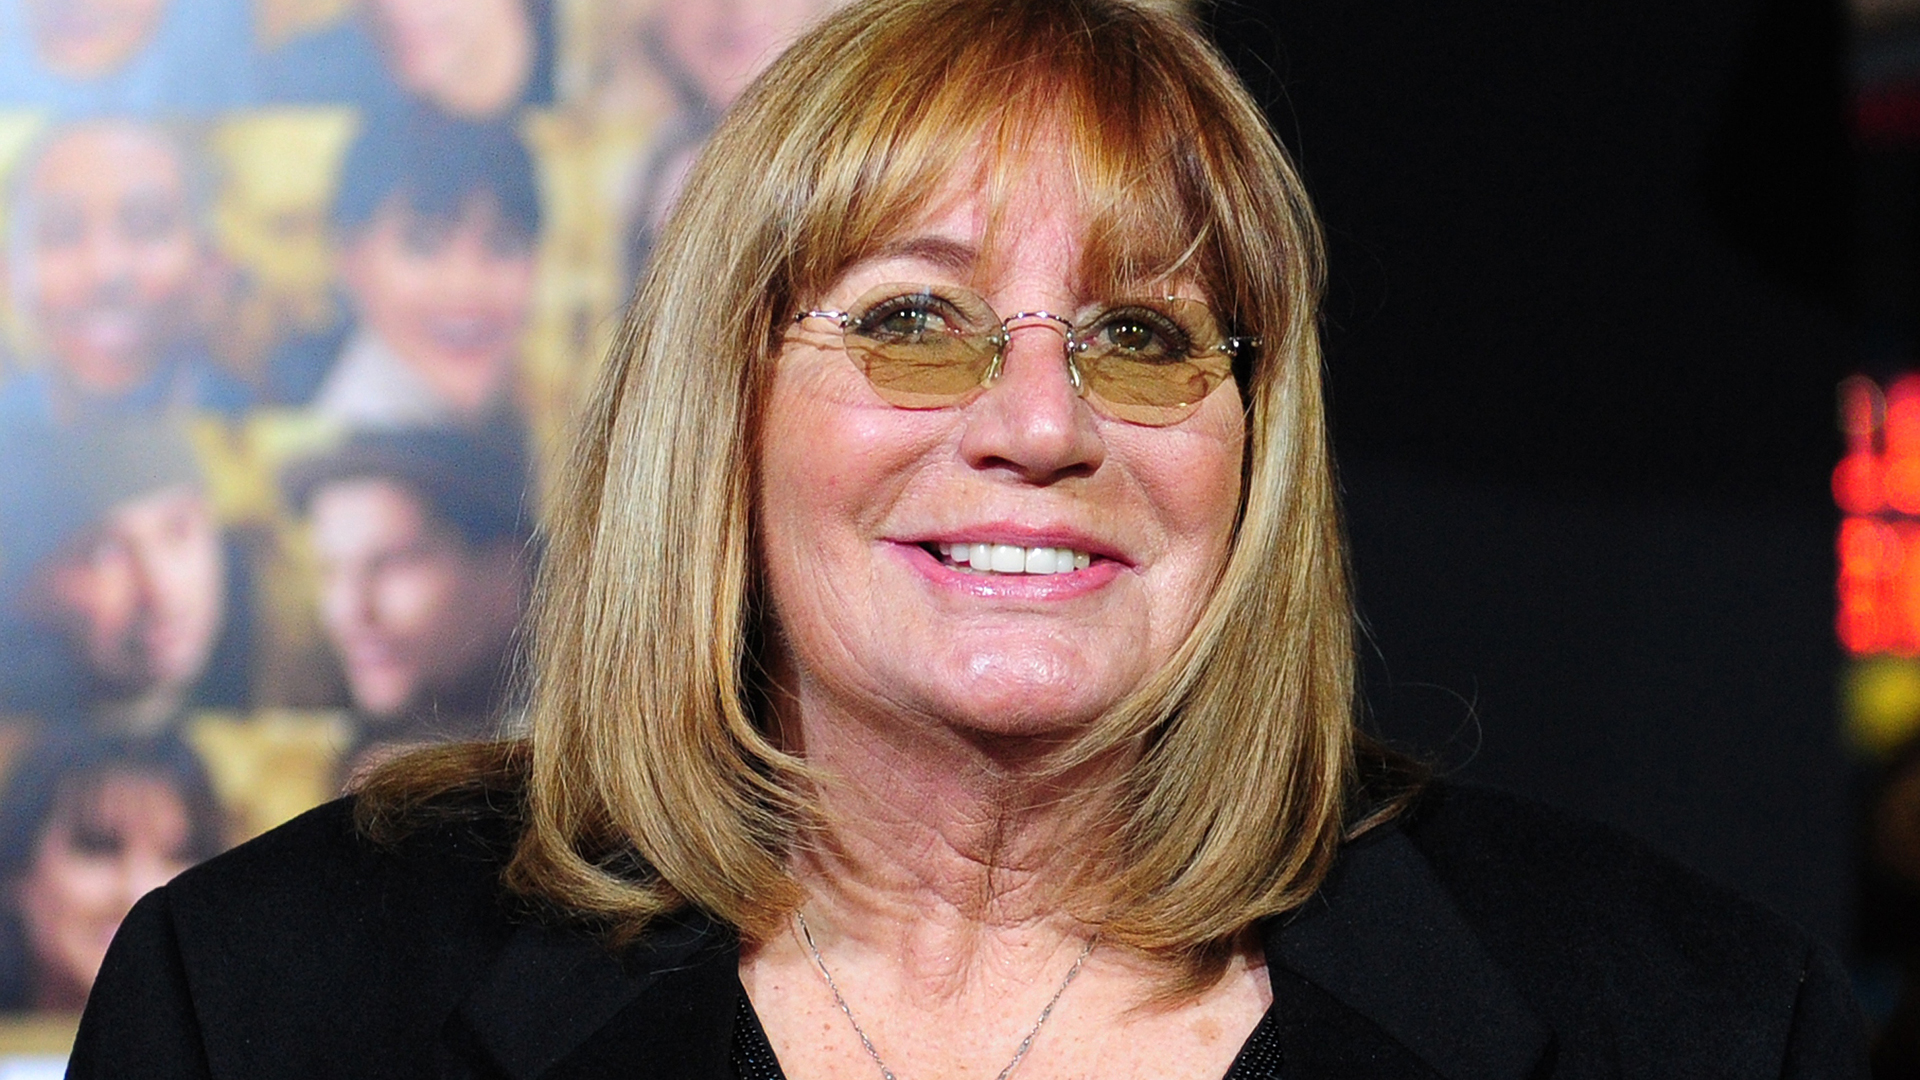 Actress Penny Marshall poses on arrival for the film premiere of 'New Year's Eve' at Grauman's Chinese Theater in Hollywood on December 5, 2011. (Credit: FREDERIC J. BROWN/AFP/Getty Images)